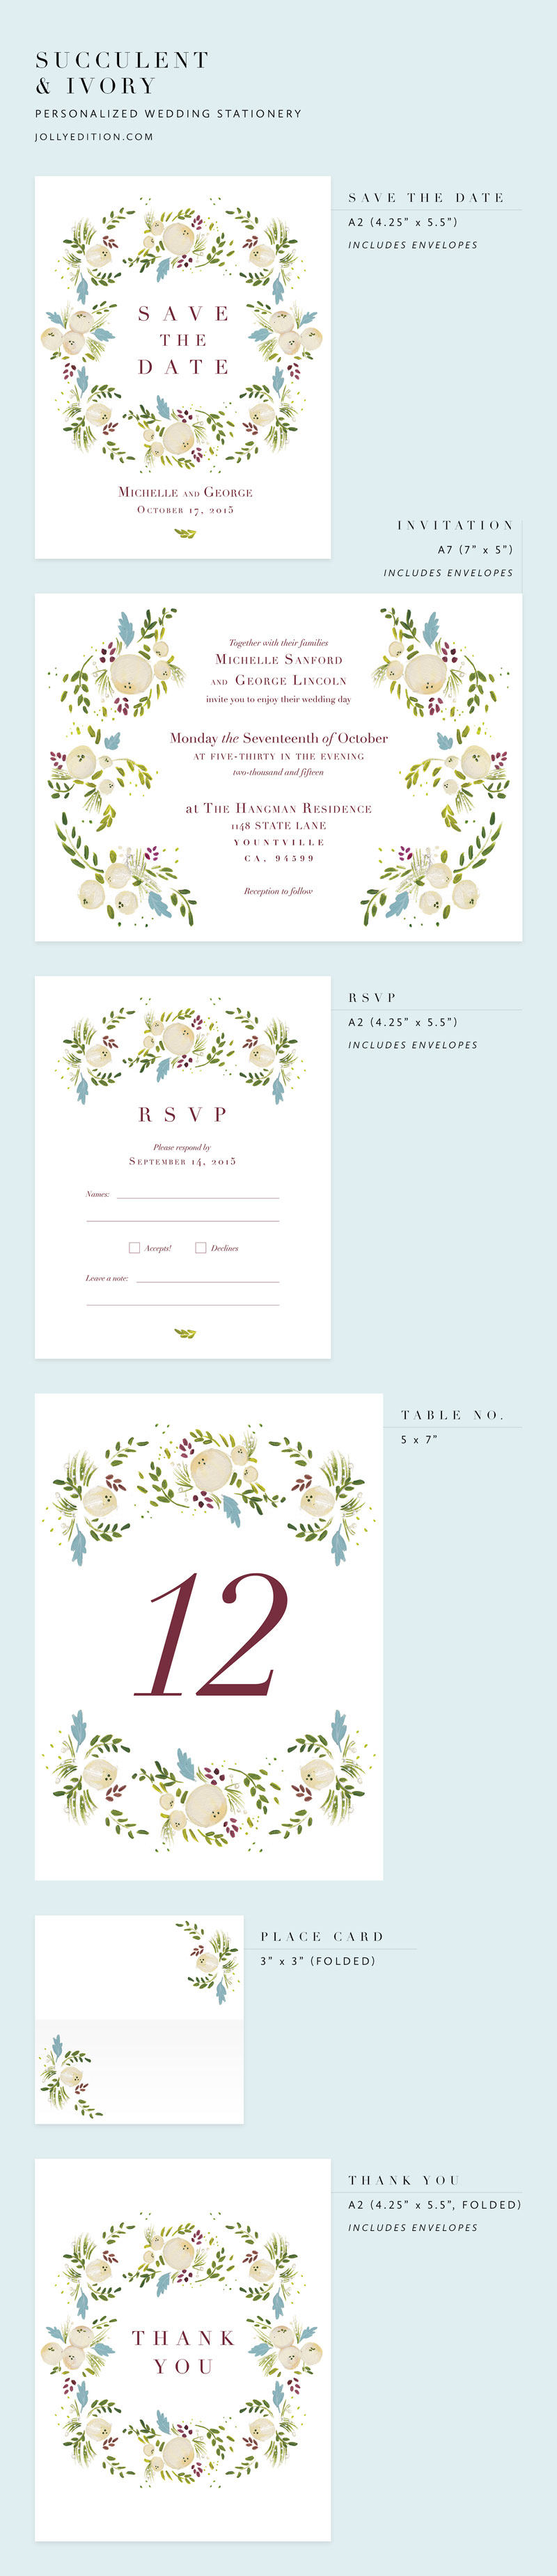 Succulent and Ivory Personalized Wedding Stationery by Laura Shema of Jolly Edition